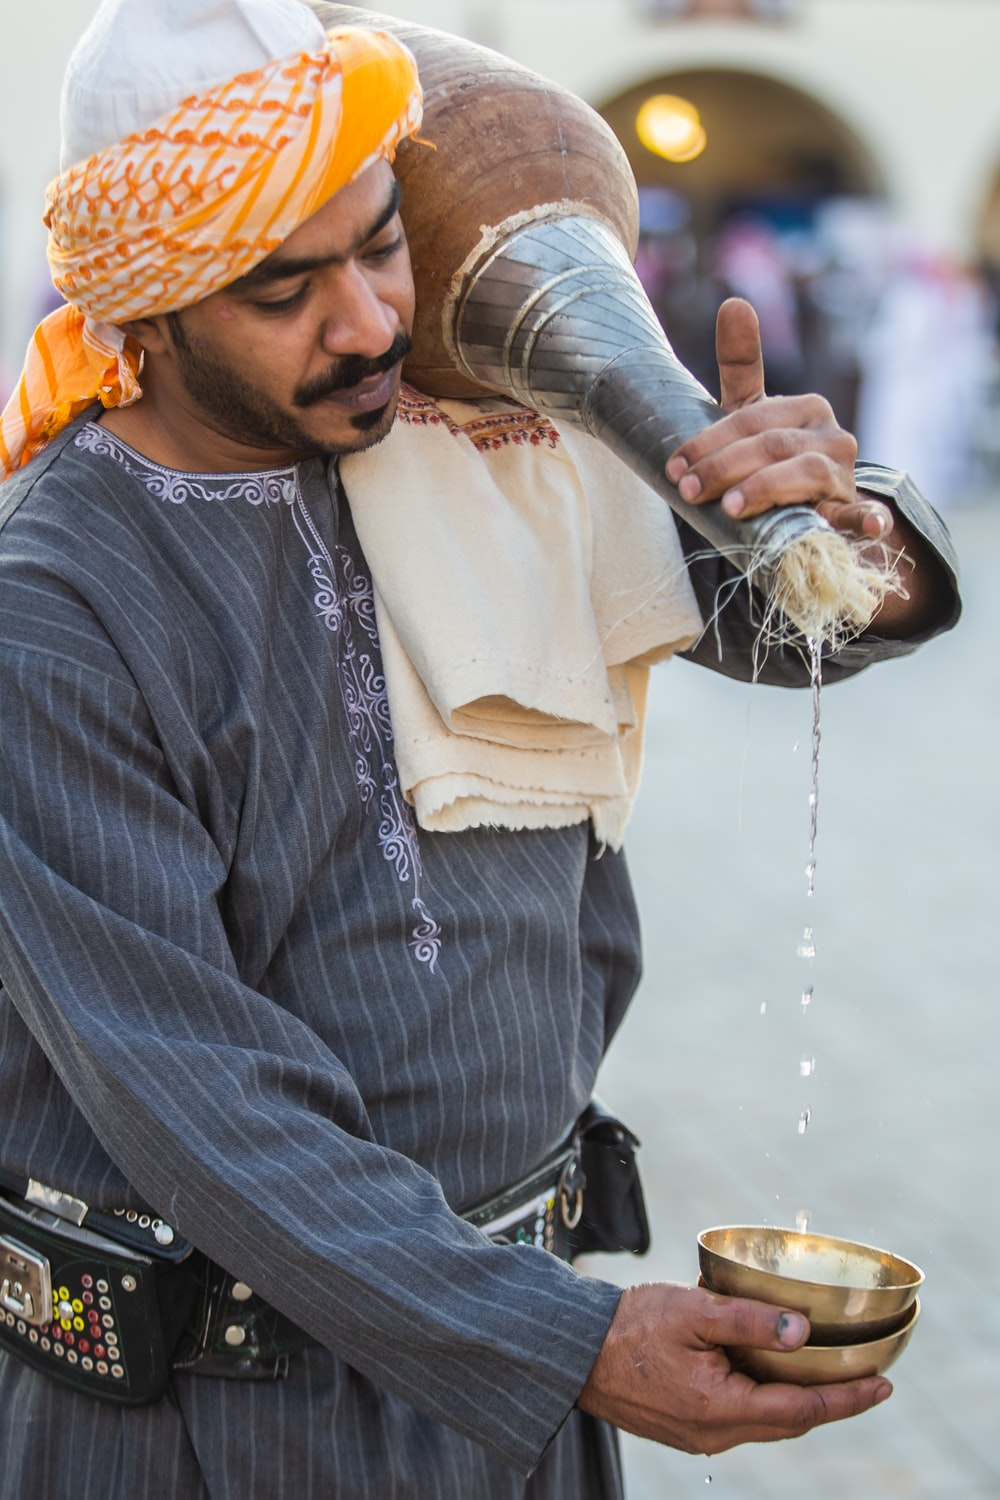 man in grey shirt pouring liquid on brass cup from container on his shoulder